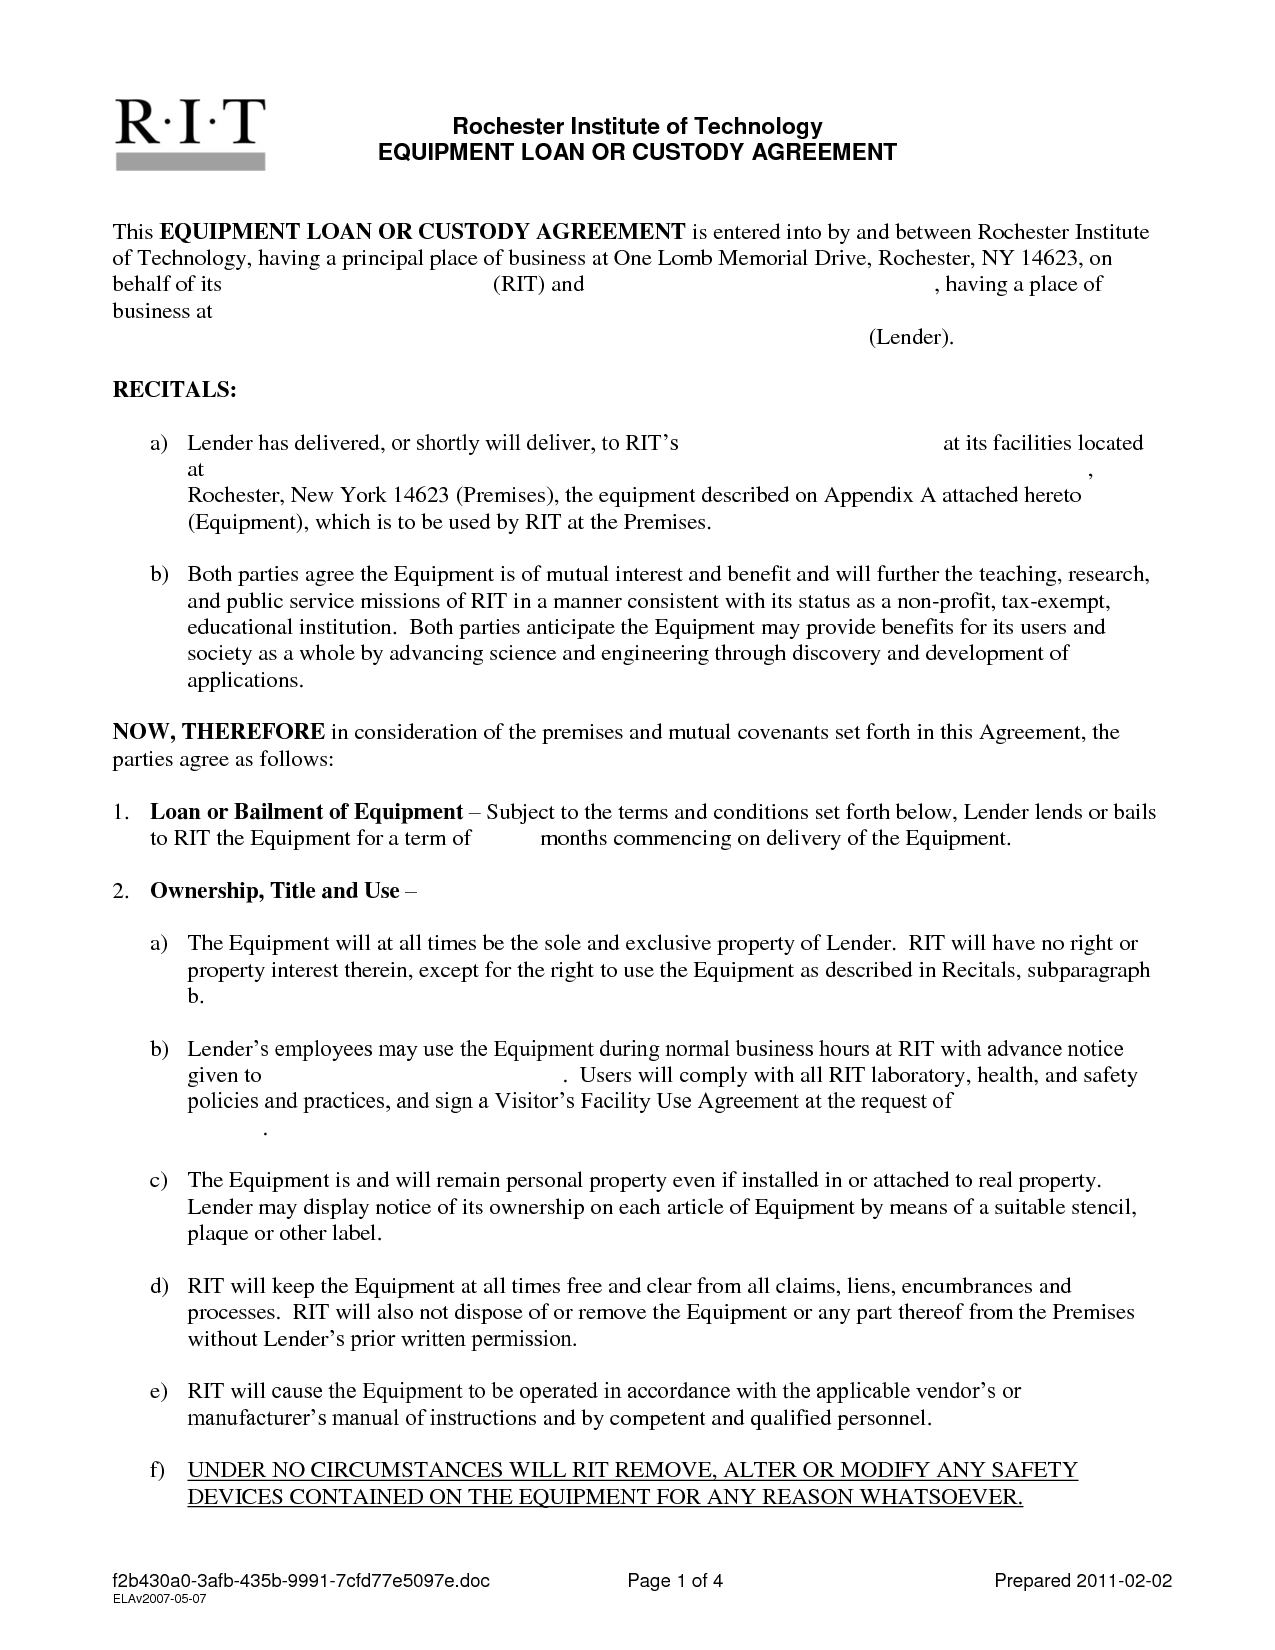 Free Loan Agreement Template Loan Contract Template 26 Examples In Word Pdf  Free, 5 Loan Agreement Templates To Write Perfect Agreements, Loan Agreement  ...  Personal Loan Agreement Template Microsoft Word